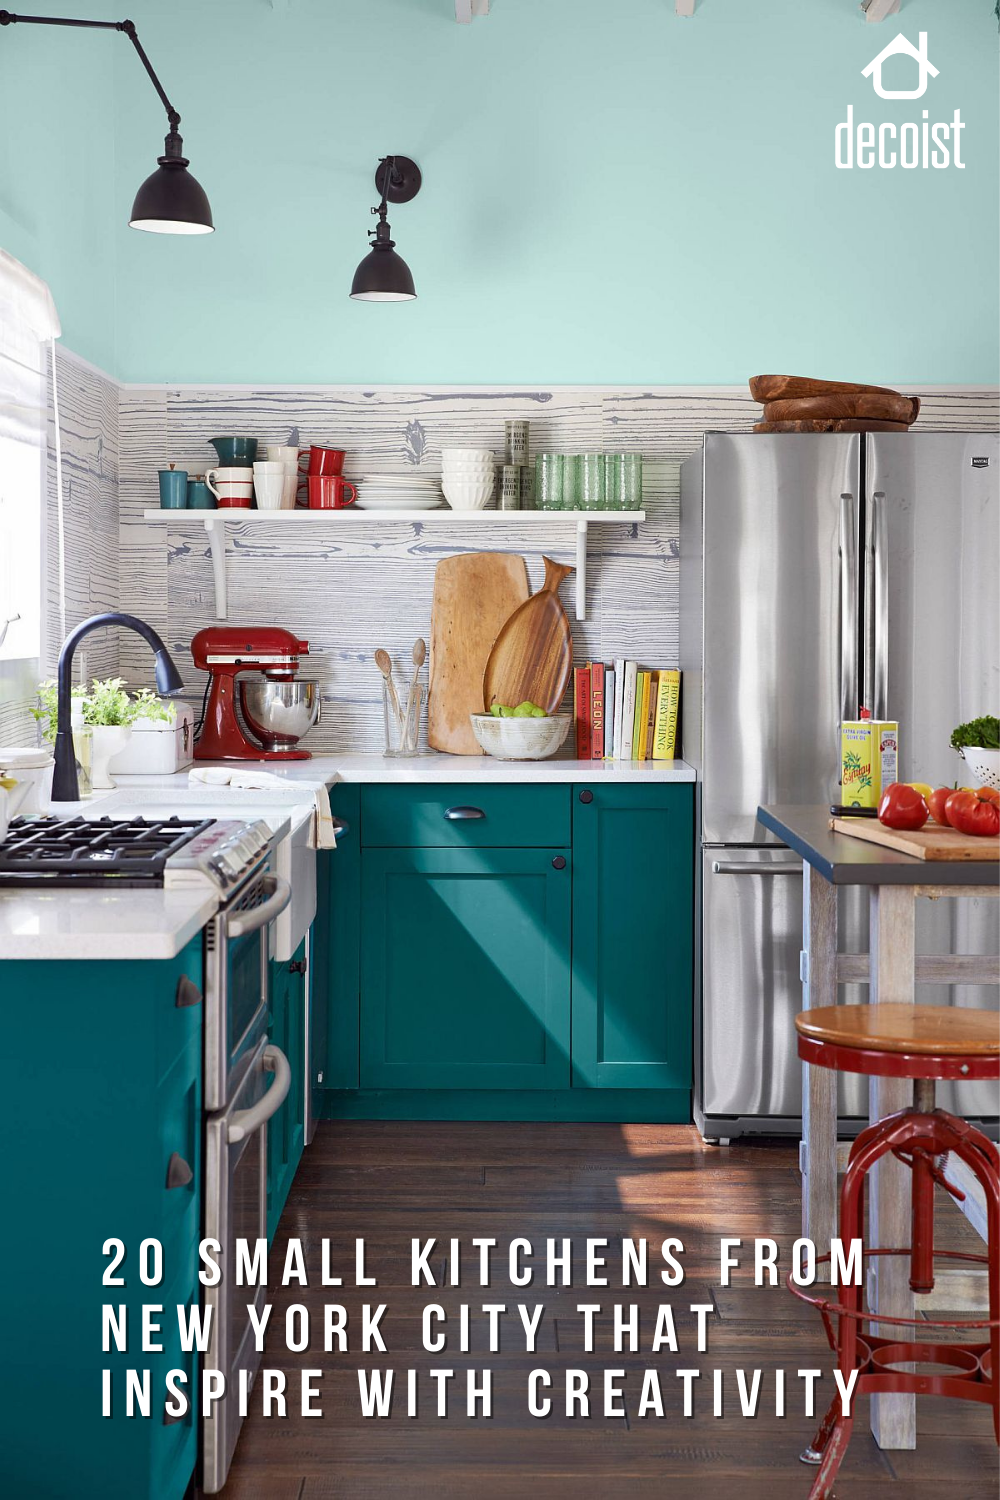 20 Best Small Kitchens From New York City That Inspire With Creativity In 2021 Kitchen Remodel Teal Kitchen Kitchen Inspirations